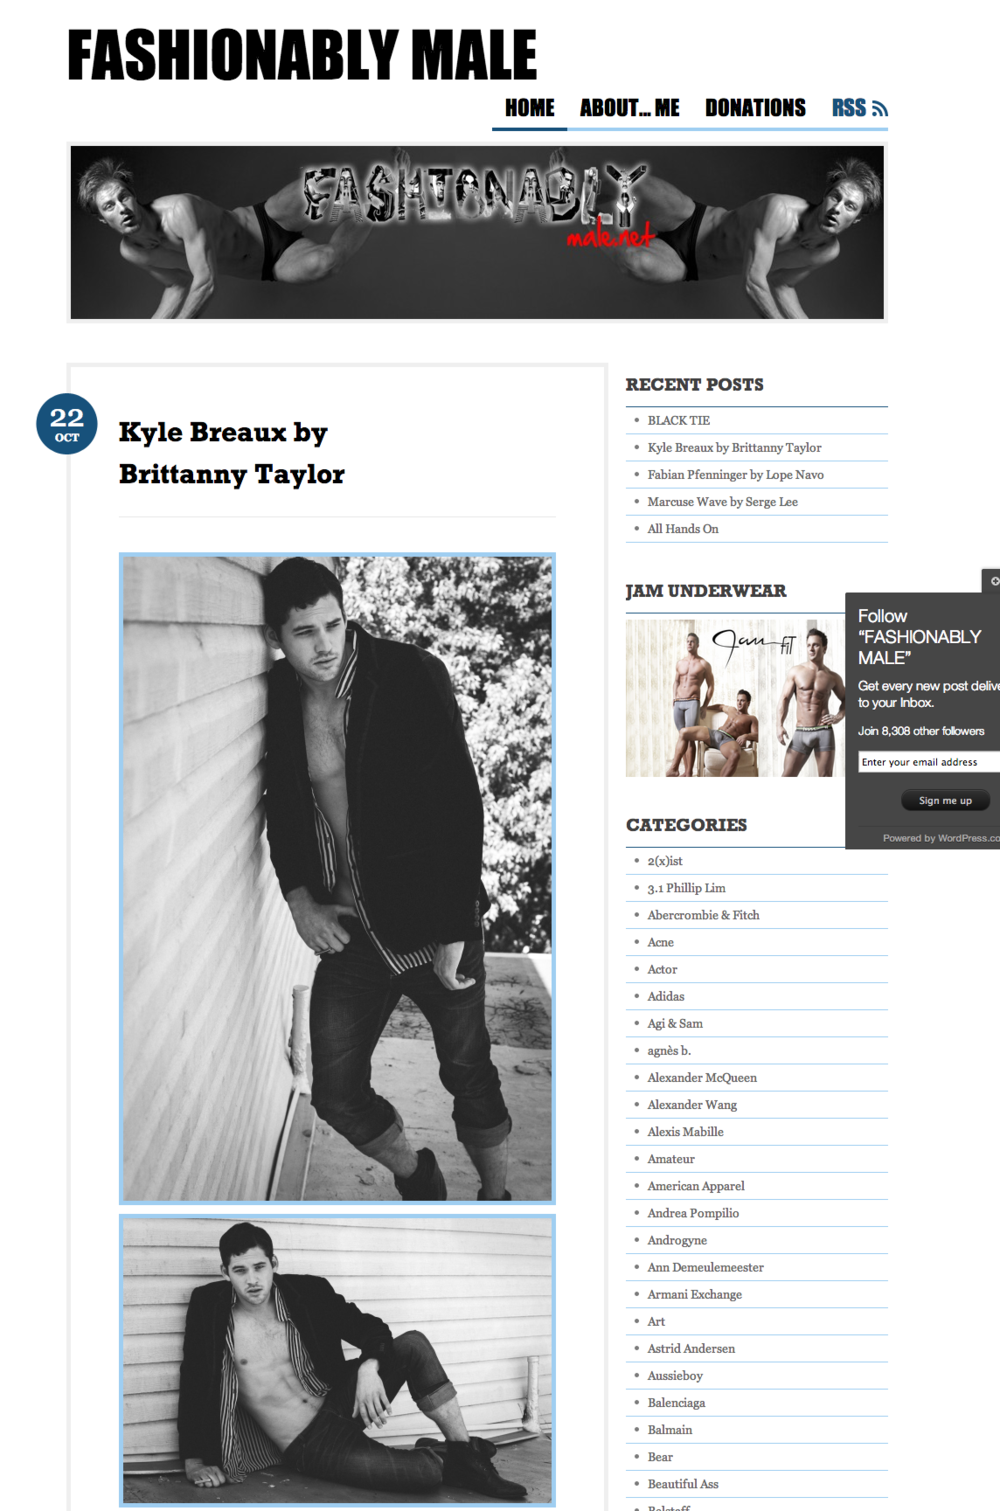 Kyle Breaux by Brittanny Taylor   FASHIONABLY MALE fb.png